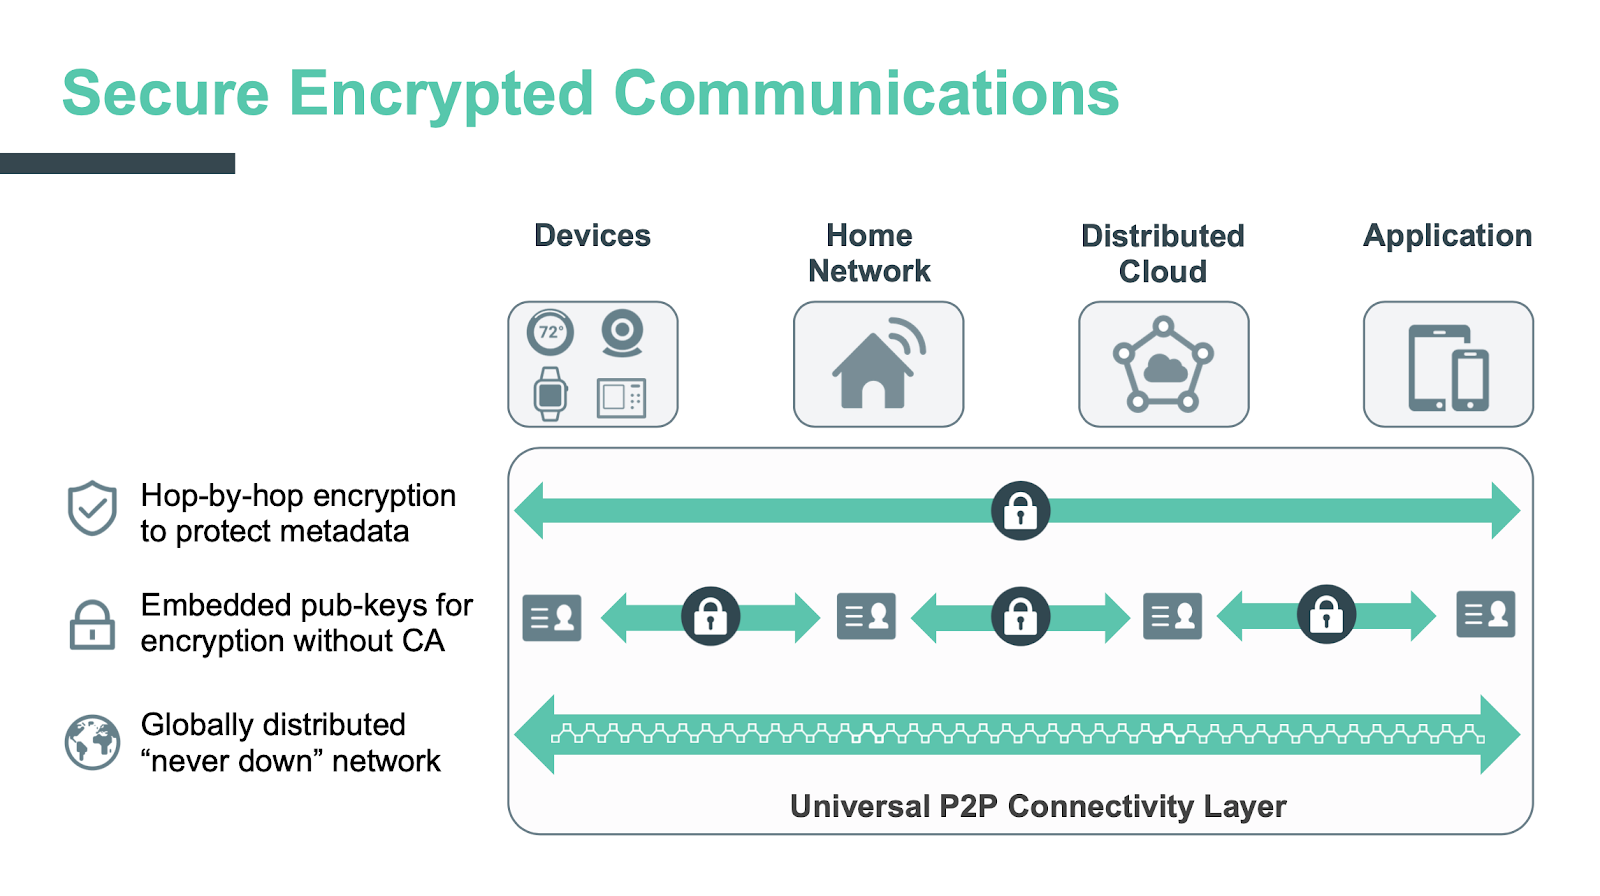 Secure encrypted communications for IoT